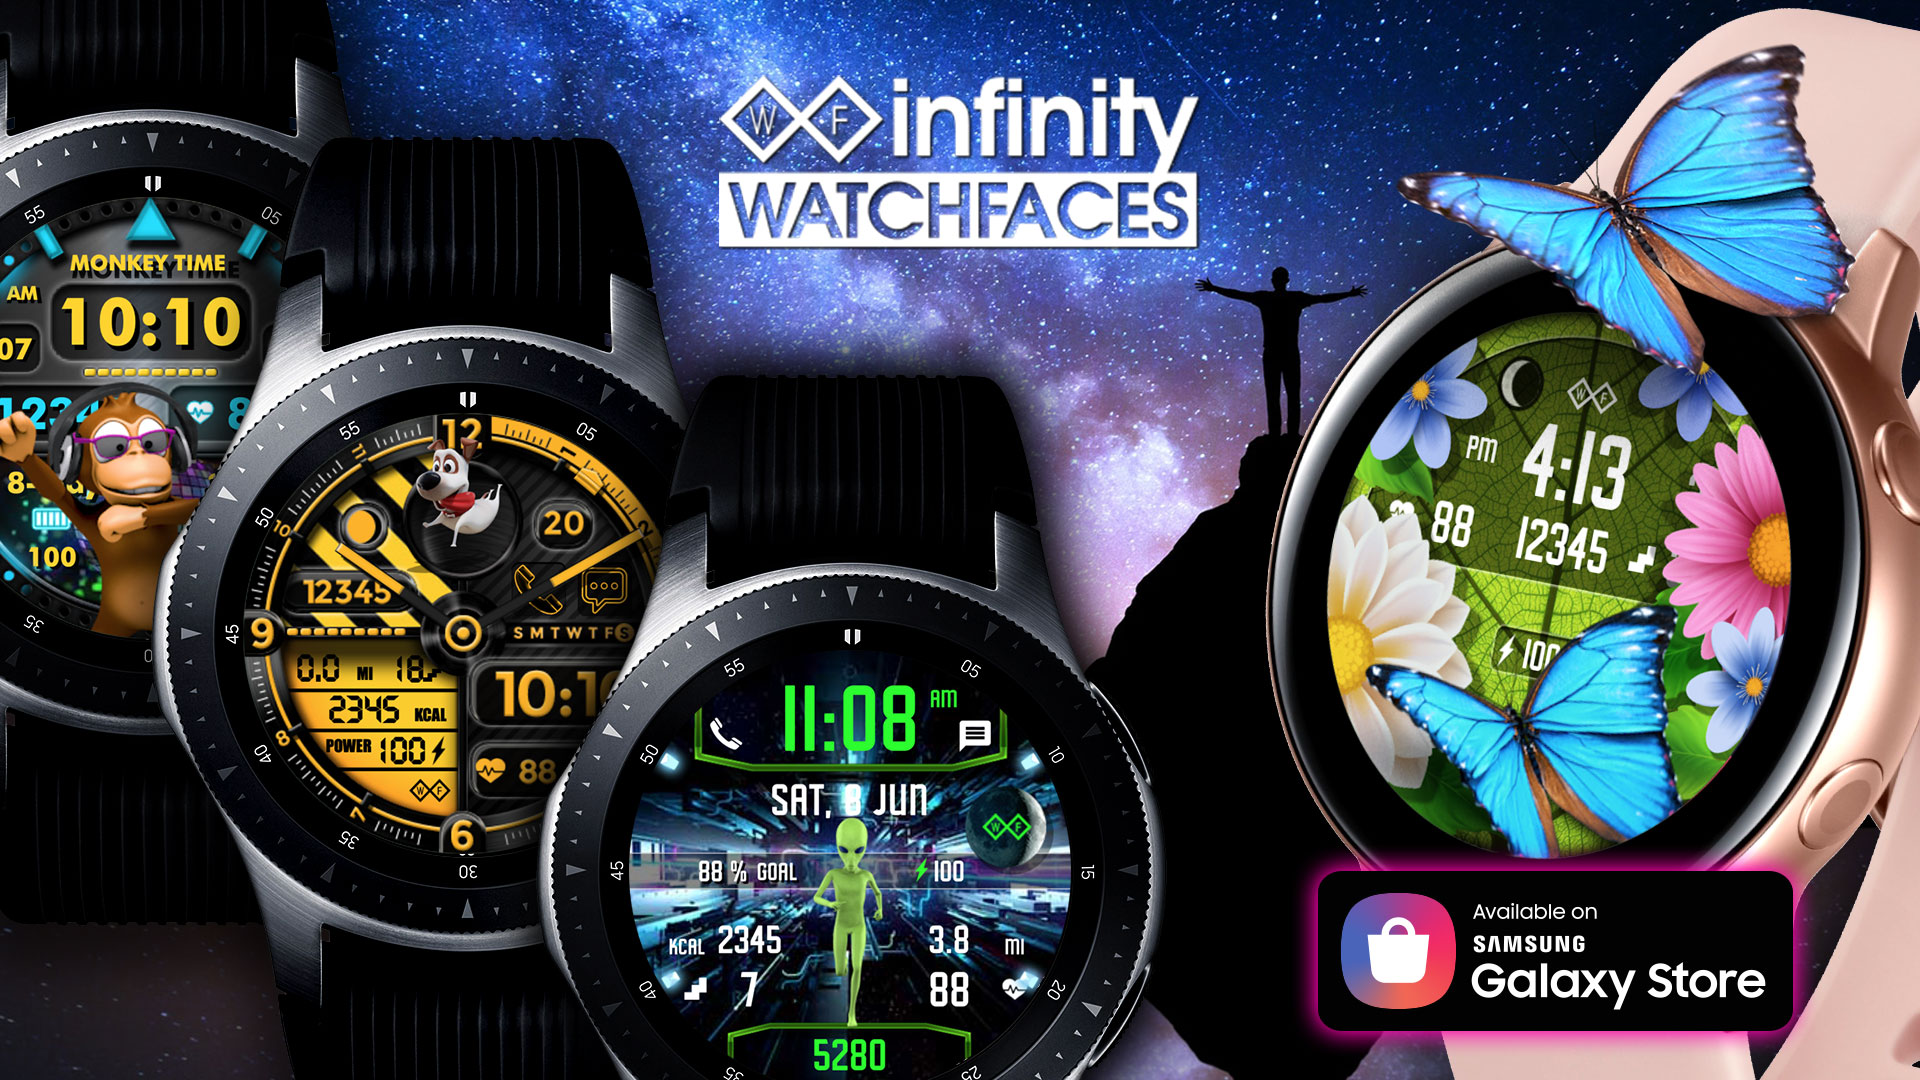 Samsung Galaxy Watch Faces Galaxy Themes Infinity Watchfaces